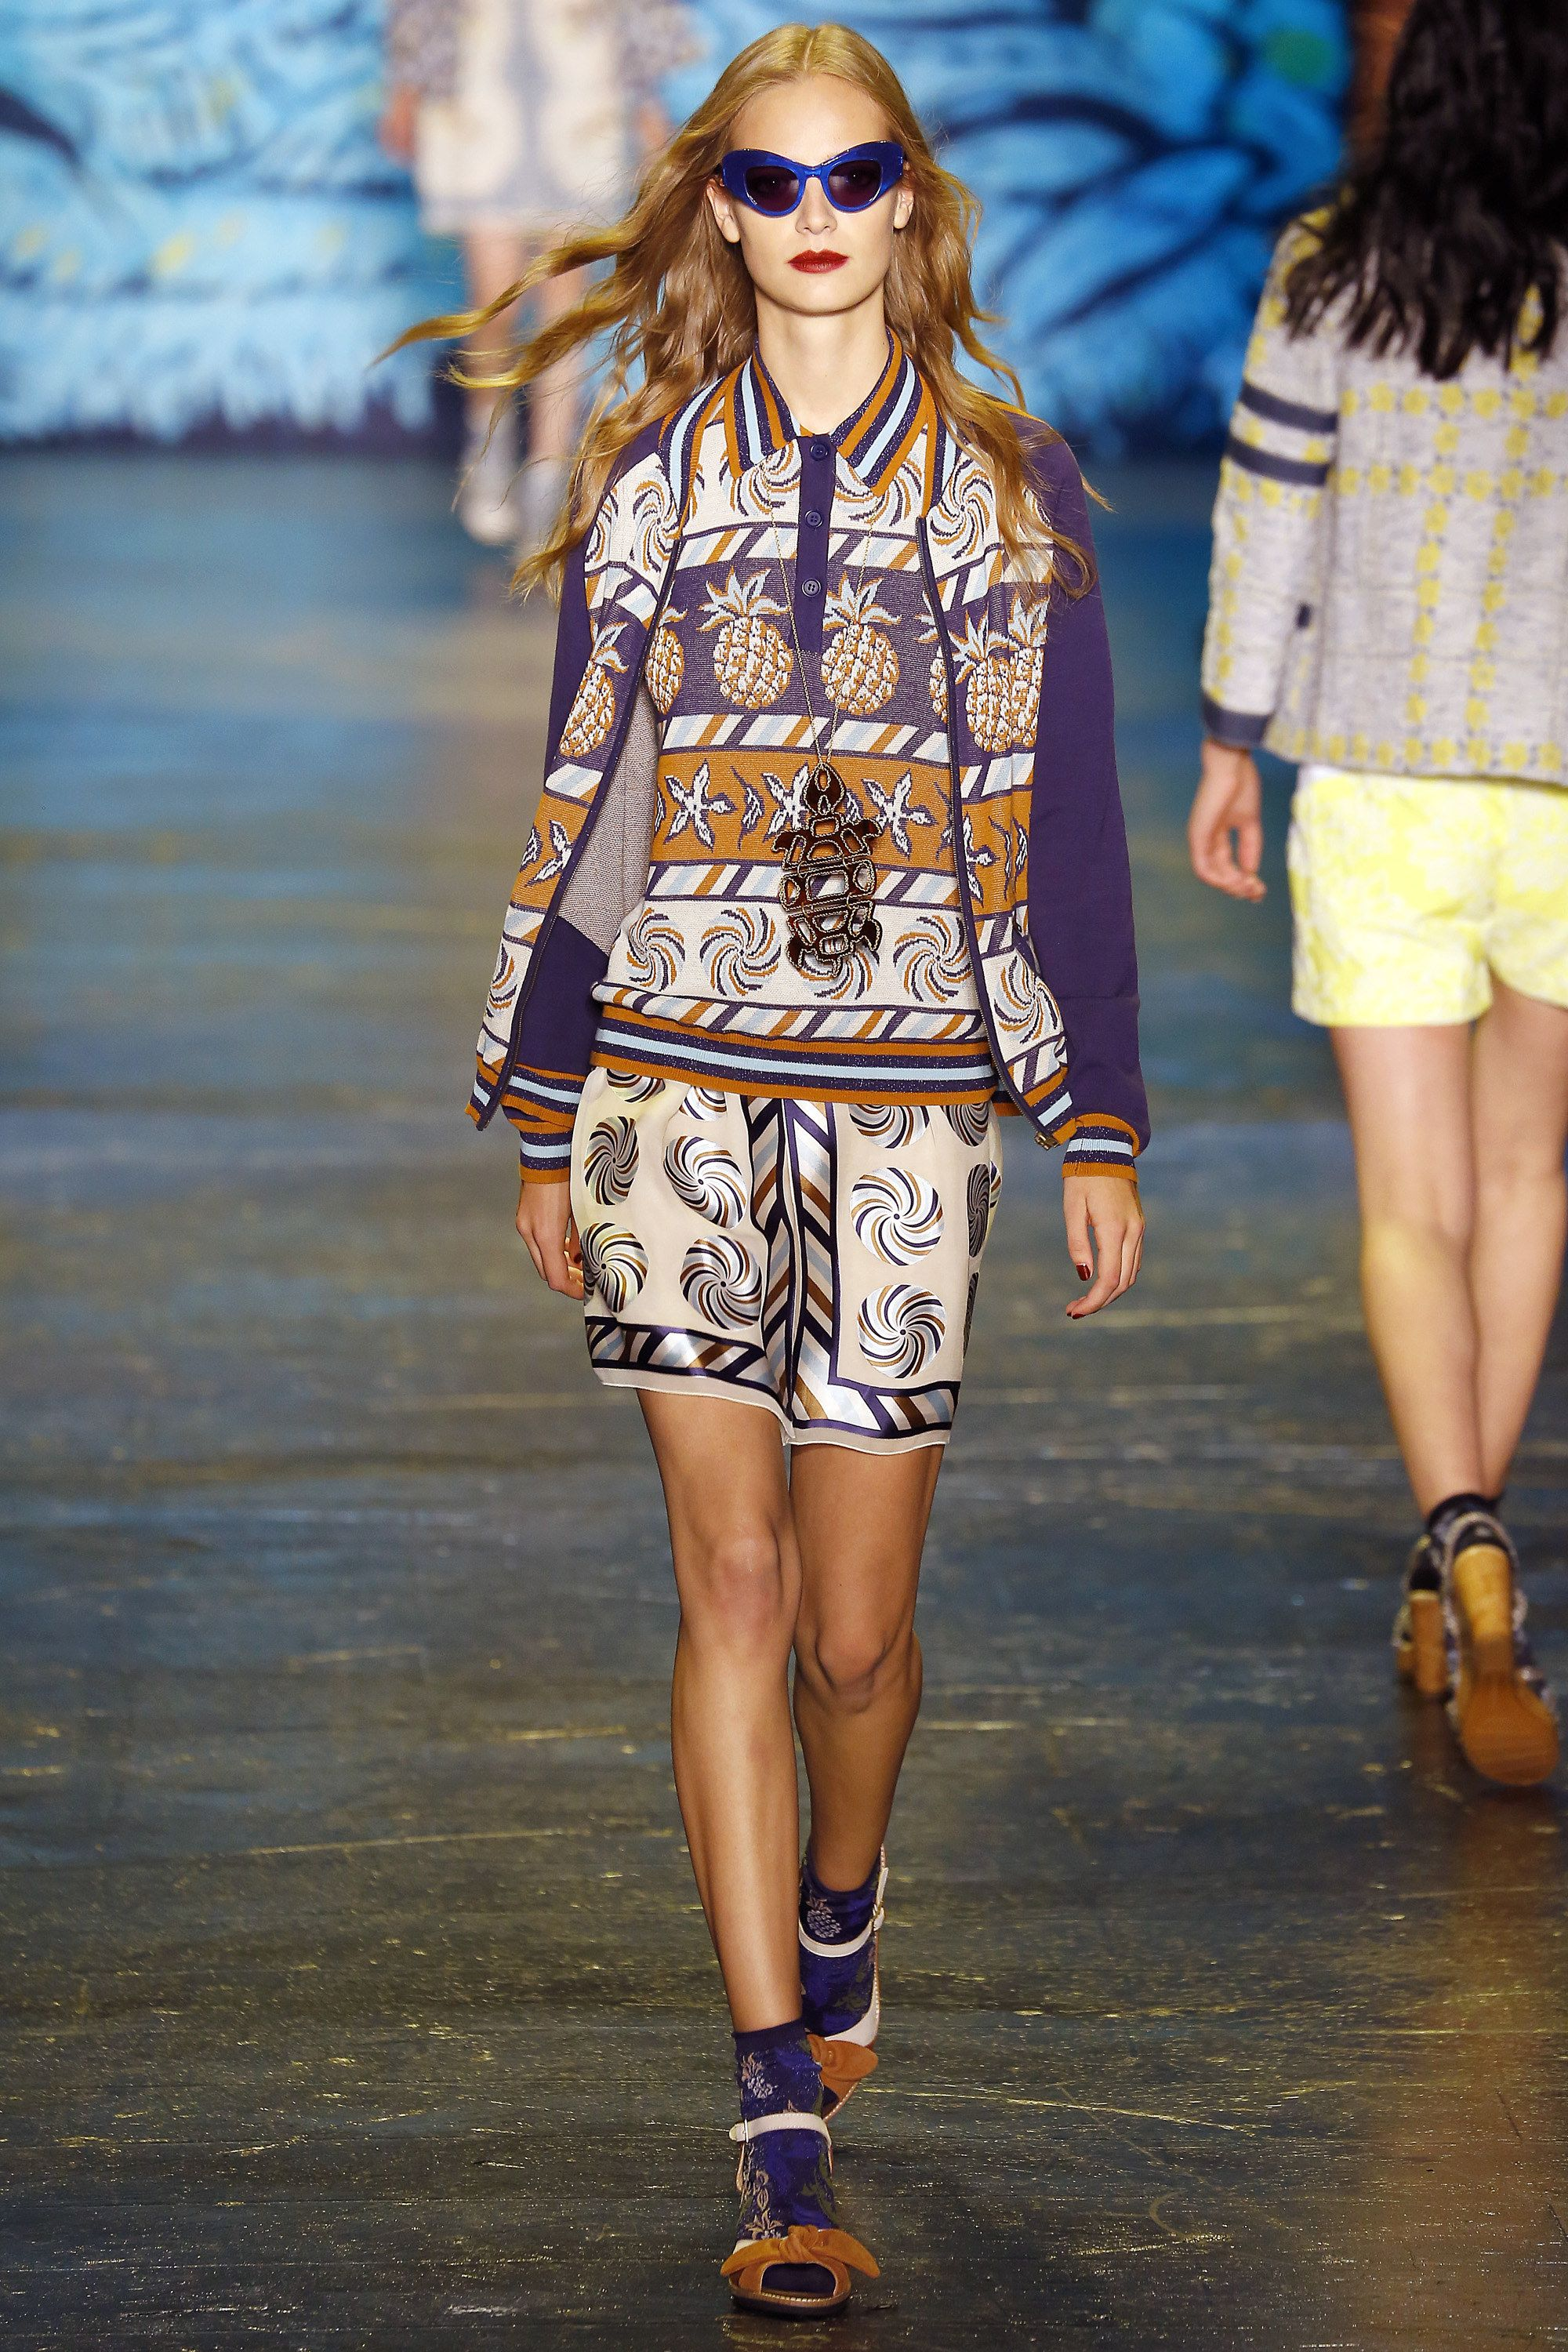 Anna Sui Spring 2016 Ready-to-Wear Collection Photos - Vogue  http://www.vogue.com/fashion-shows/spring-2016-ready-to-wear/anna-sui/slideshow/collection#16